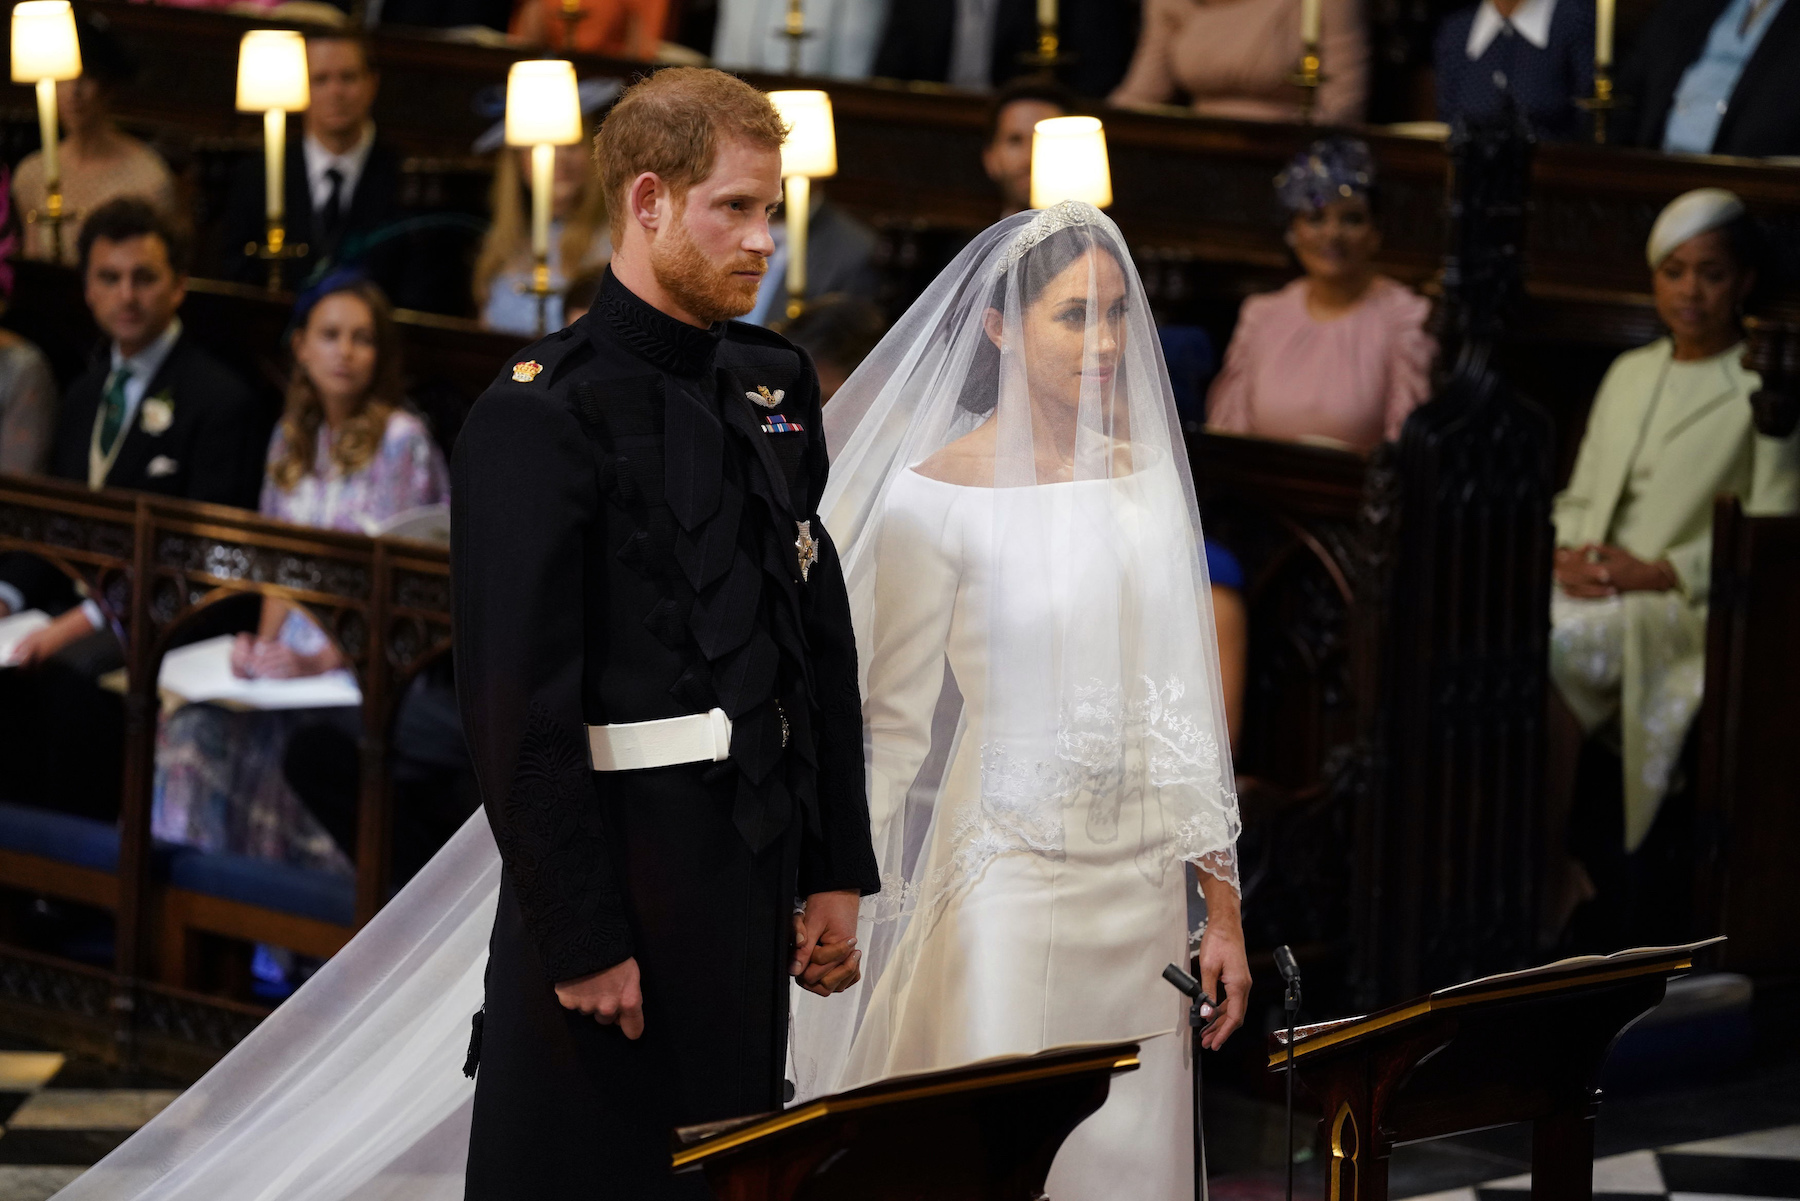 "<div class=""meta image-caption""><div class=""origin-logo origin-image wls""><span>wls</span></div><span class=""caption-text"">Prince Harry and Meghan Markle in St George's Chapel at Windsor Castle for their wedding. (Dominic Lipinsky/PA Wire)</span></div>"